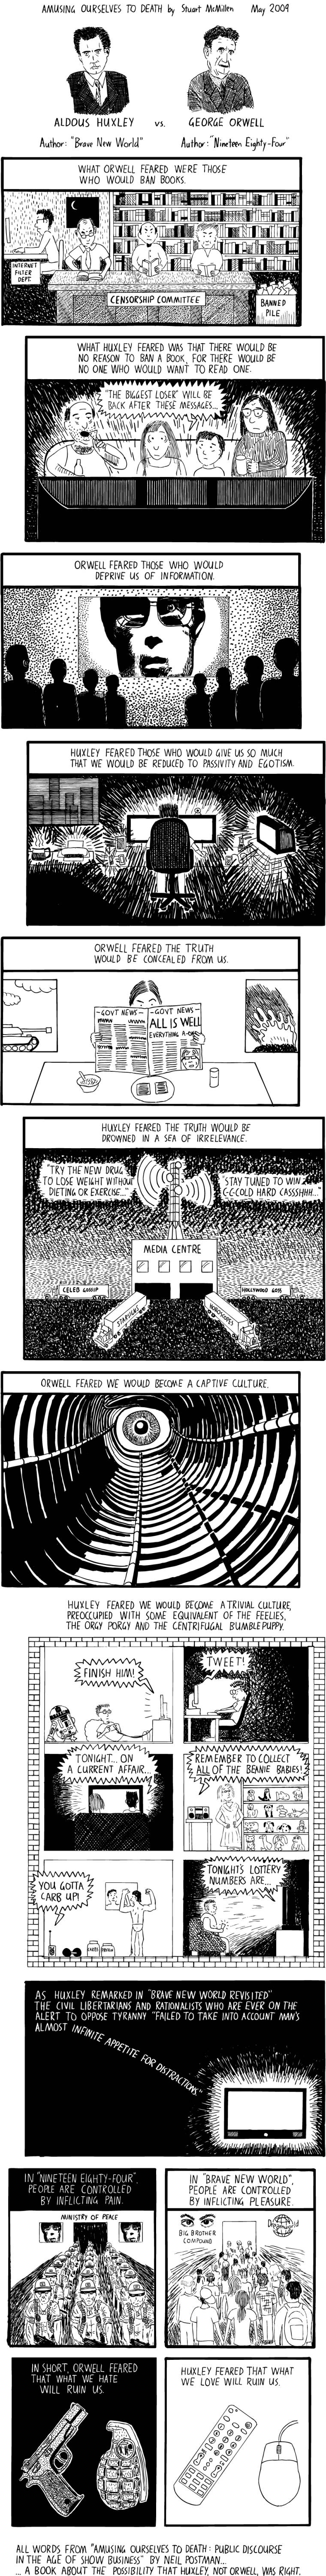 Huxley Vs Orwell The Webcomic  Biblioklept